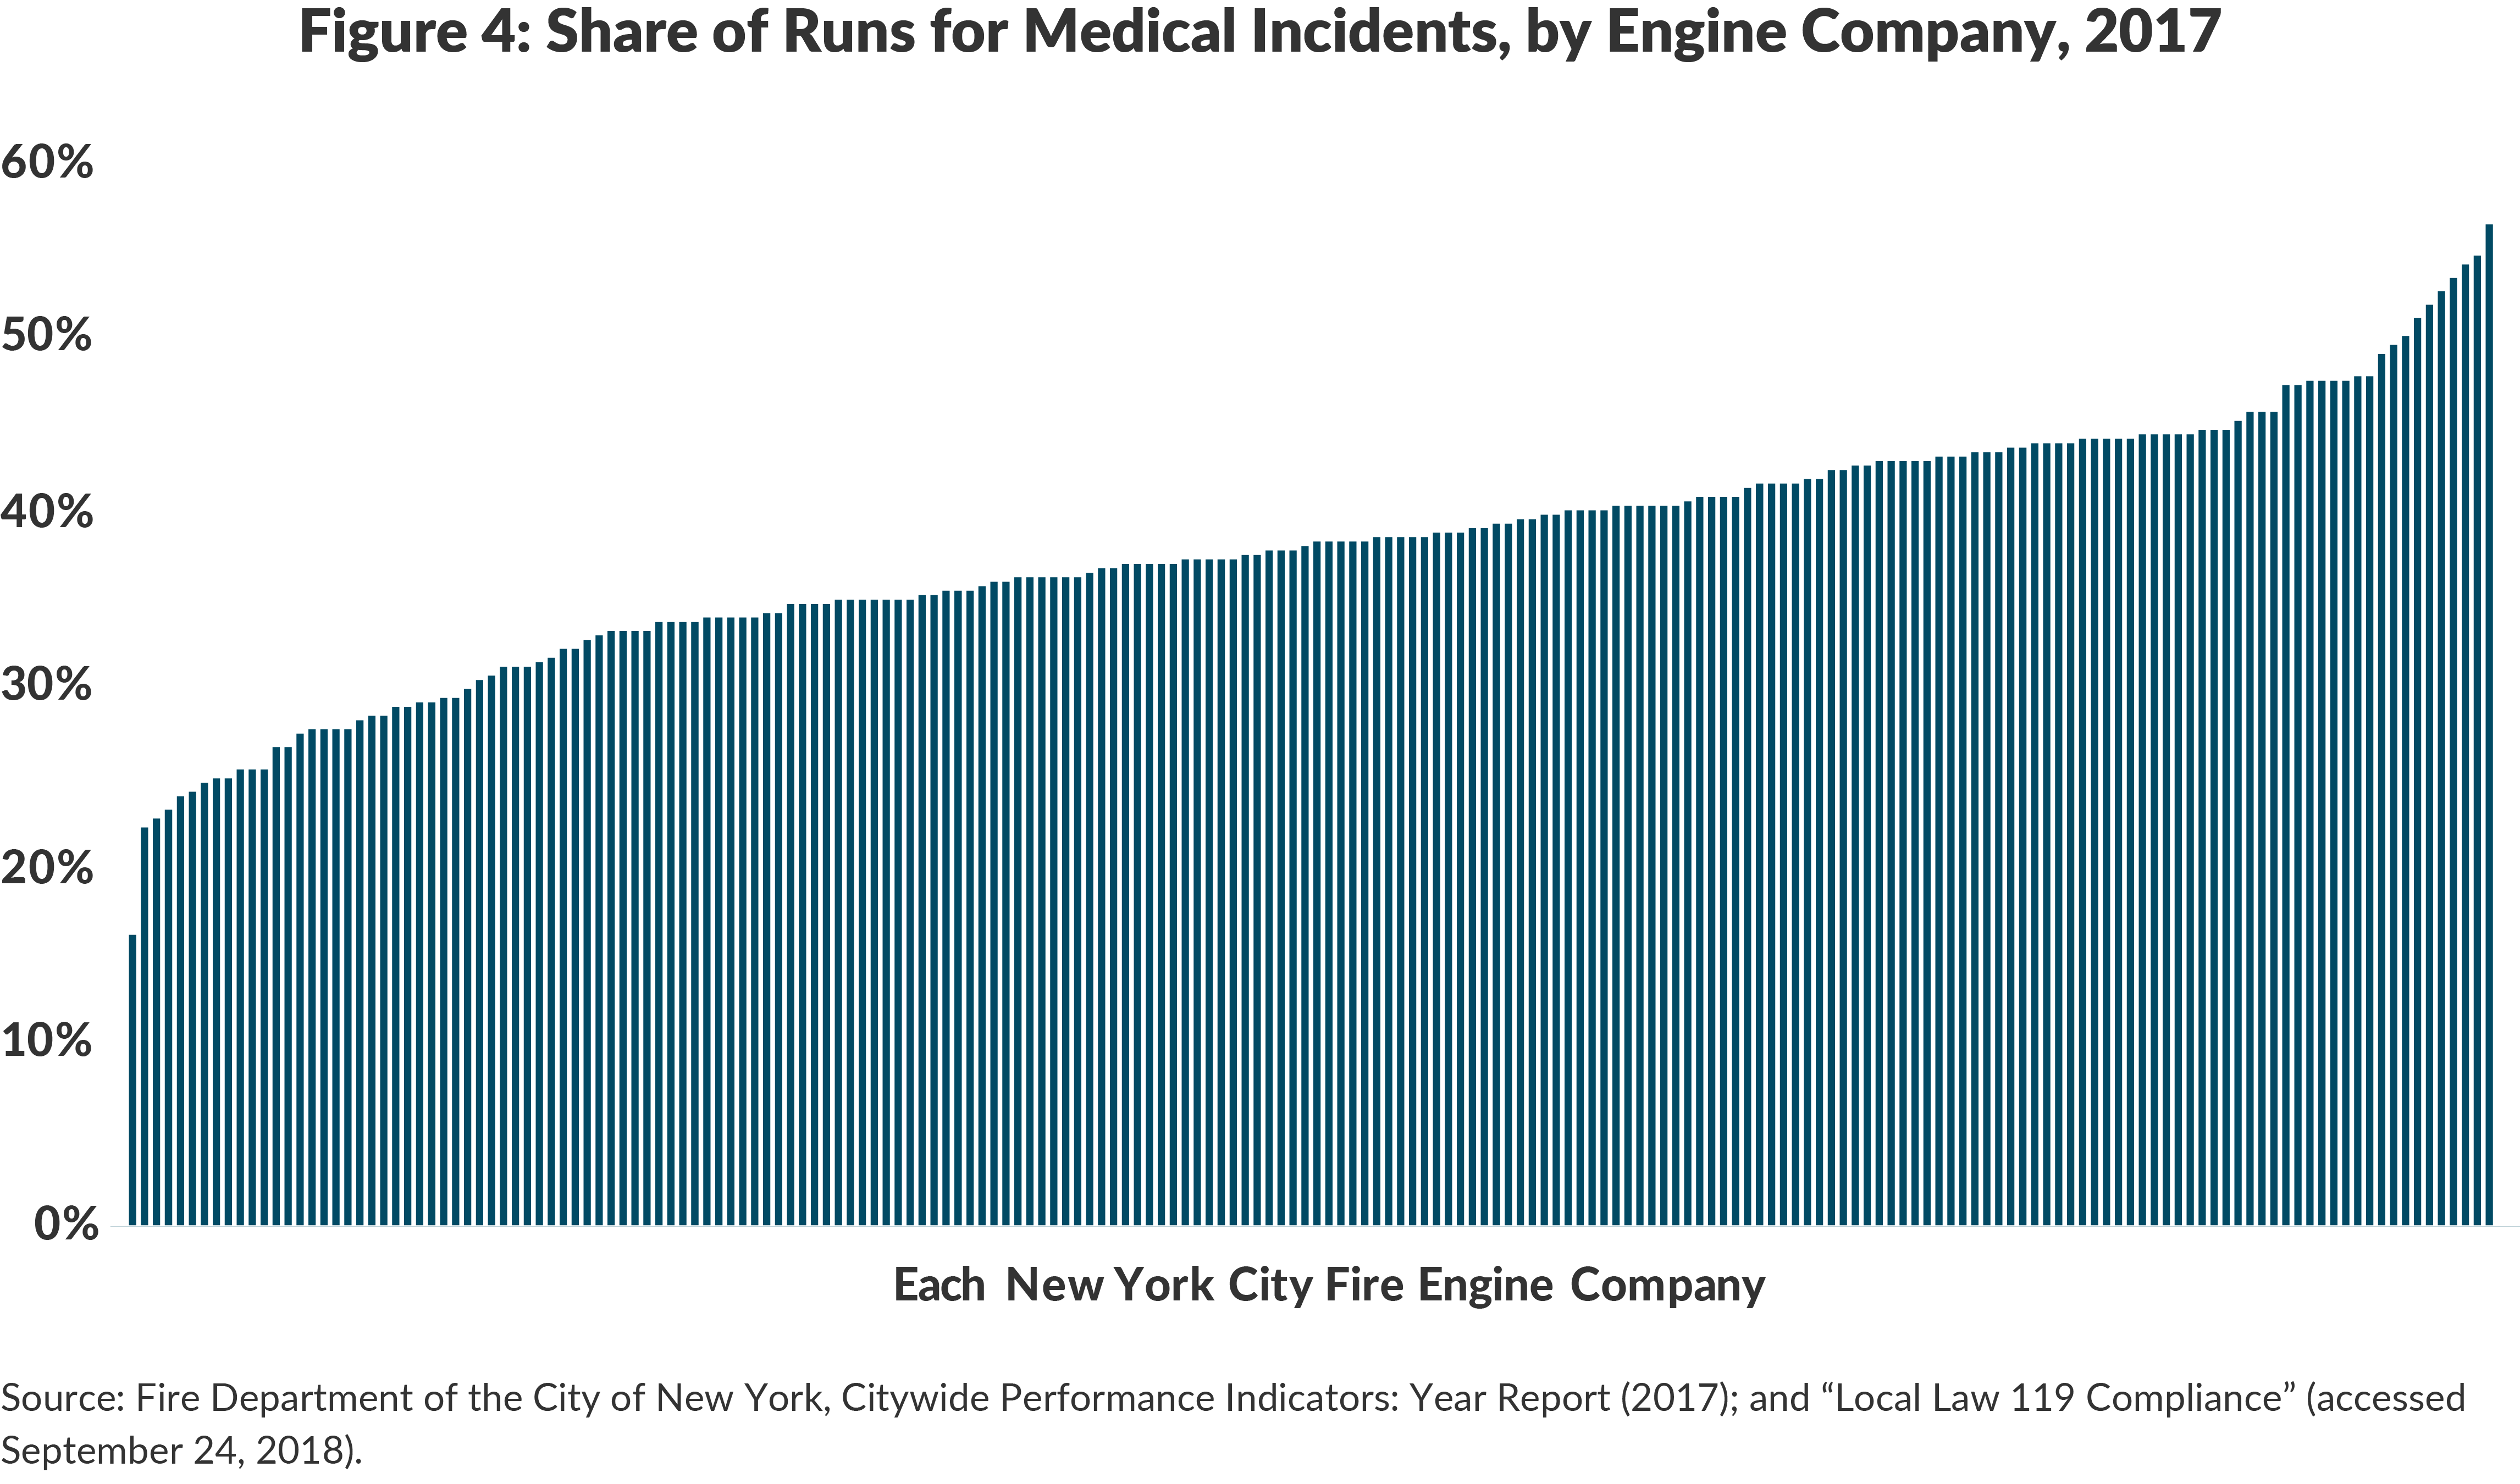 Figure 4: Share of Runs for Medical Incidents, by Engine Company, 2017